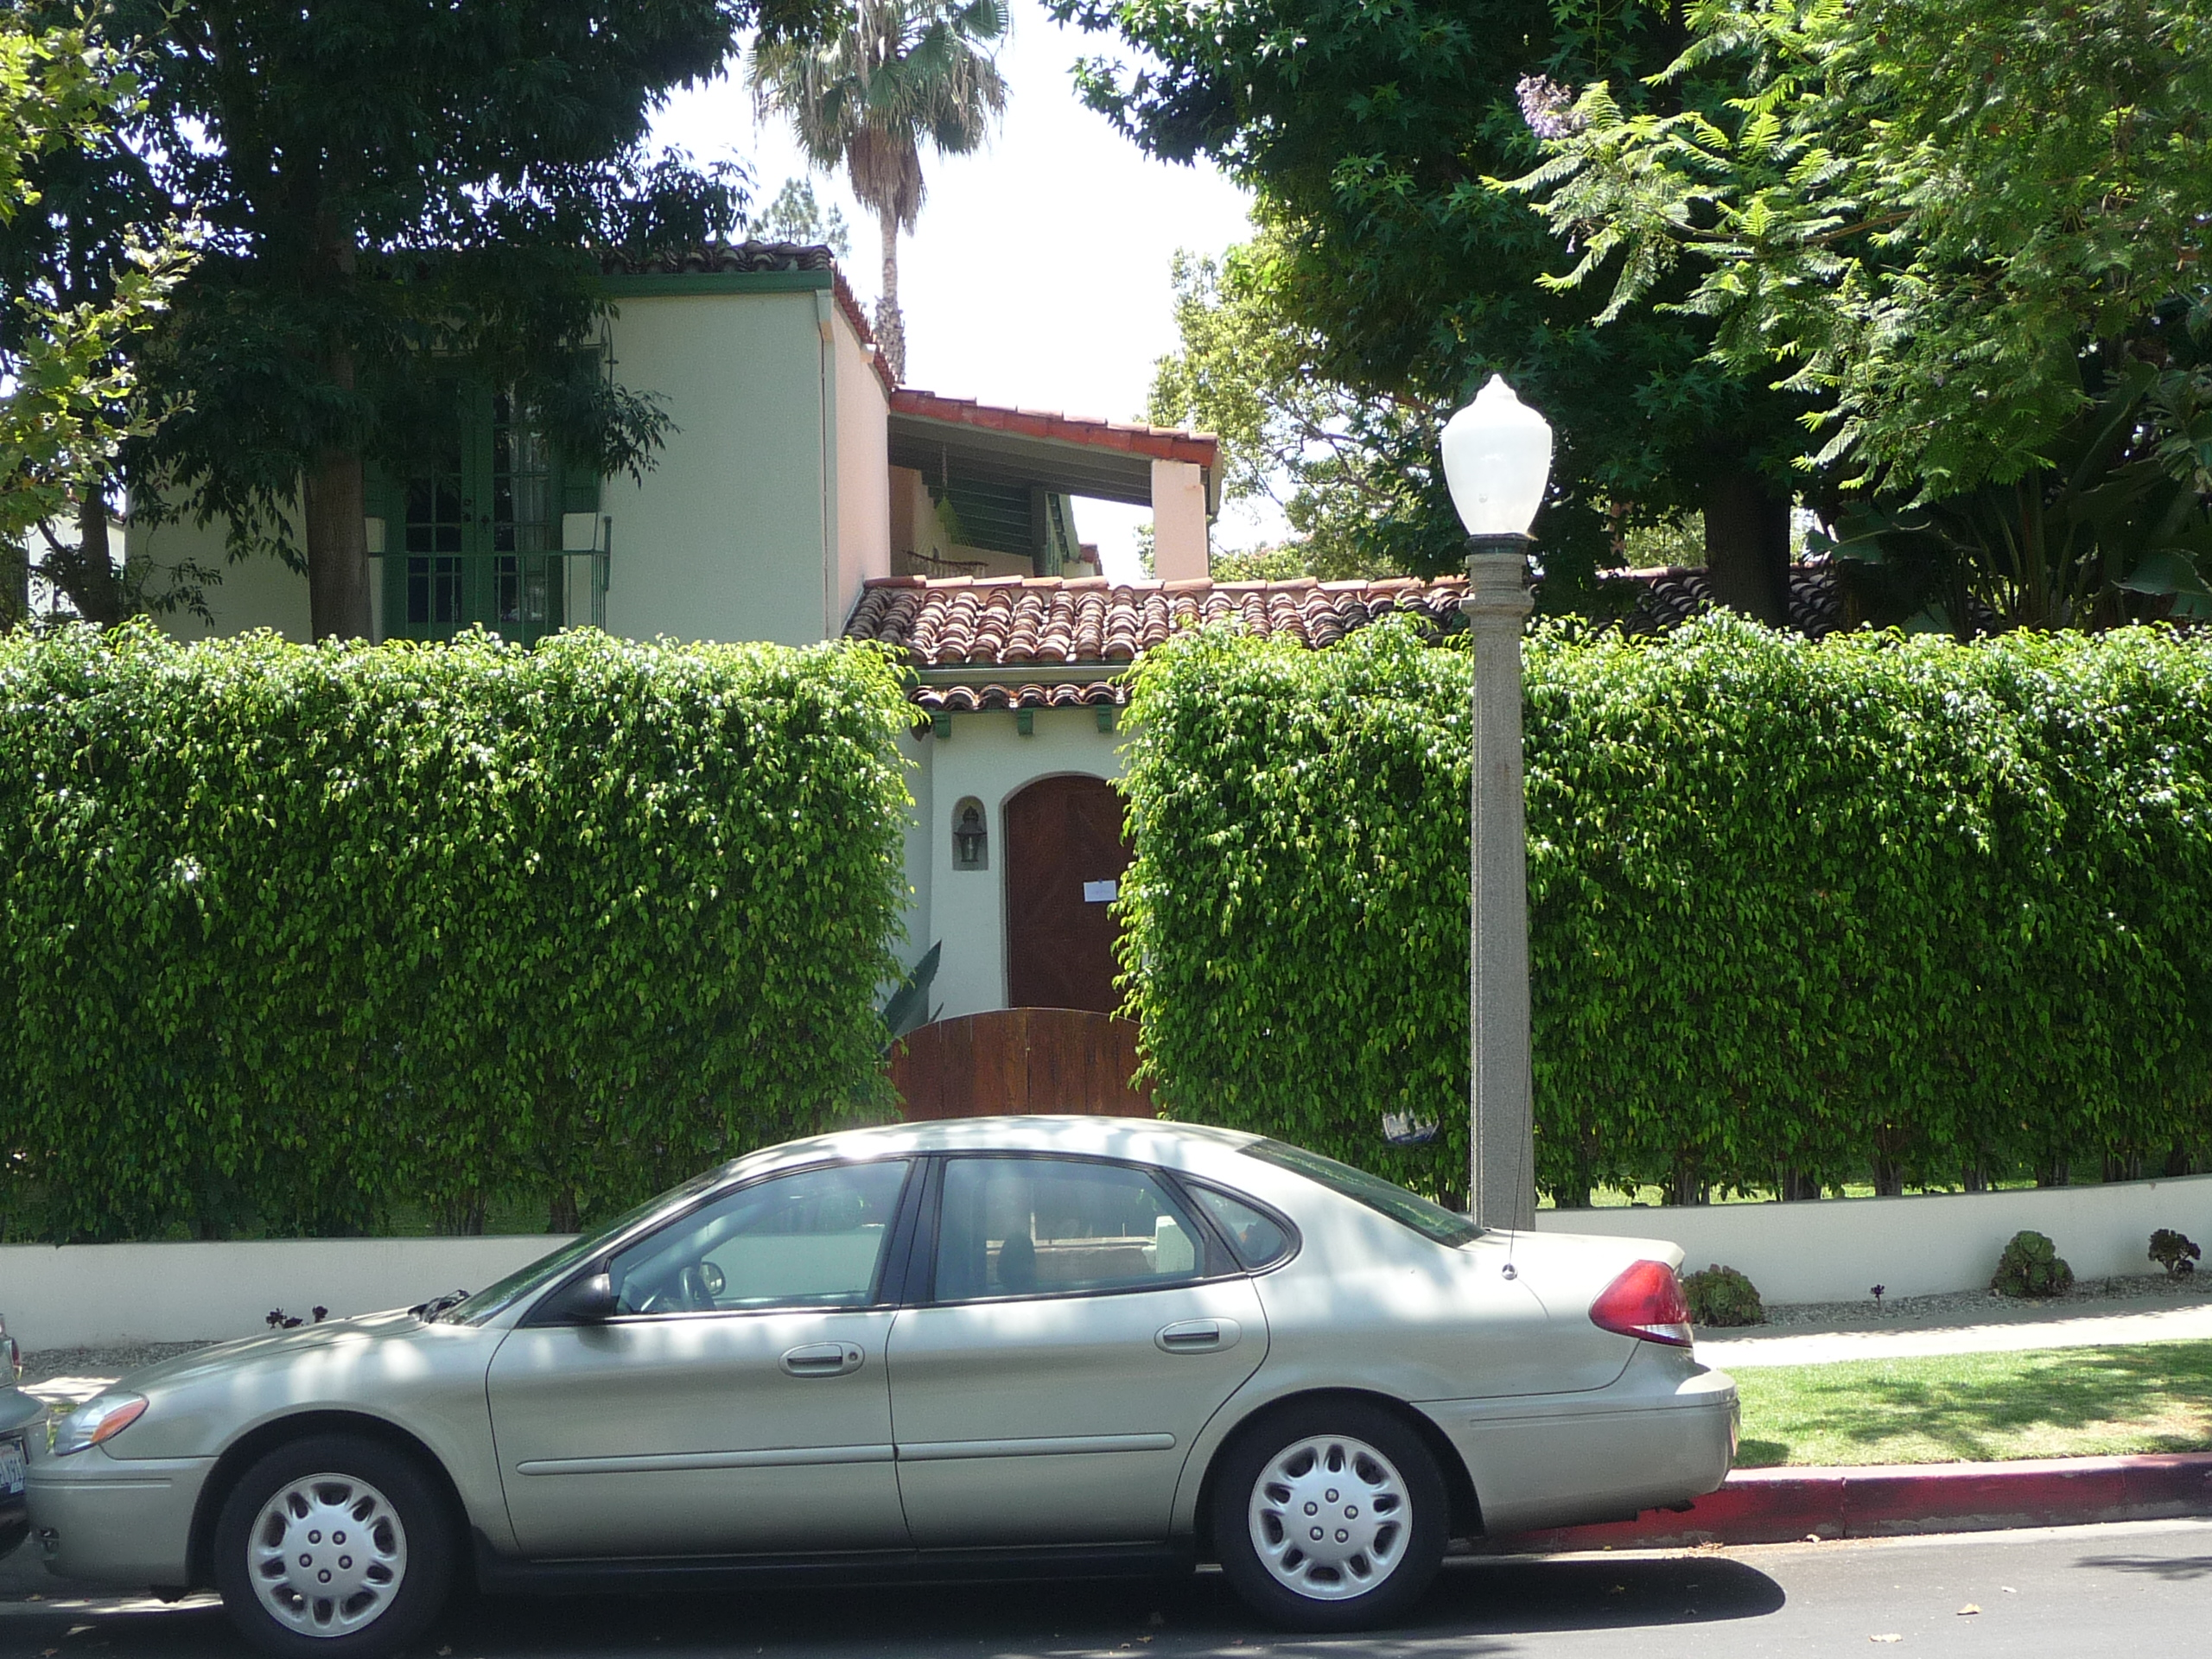 461 N MANSFIELD AVE - PHOTO